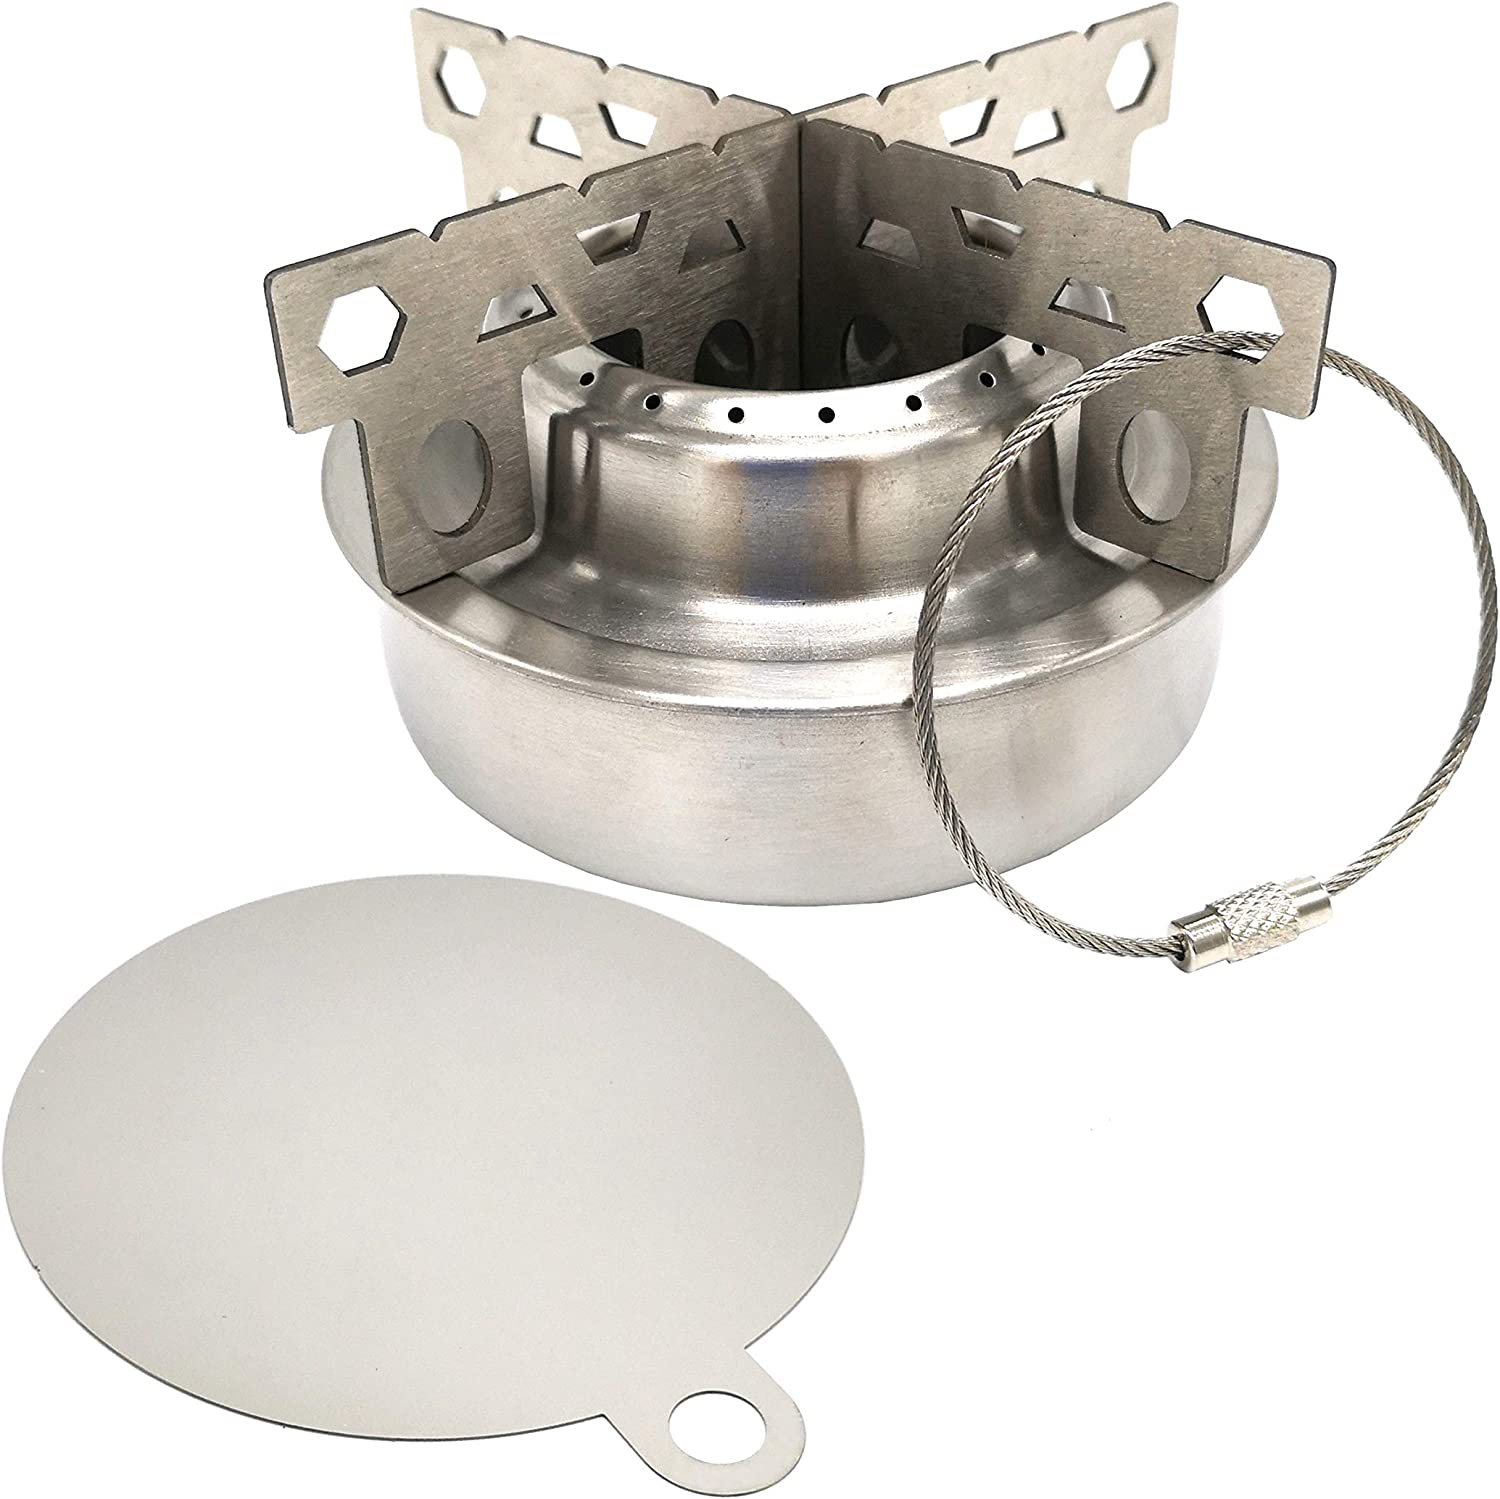 Alcohol Stove Burner Camping Picnic Cookware Burner Heater Stand